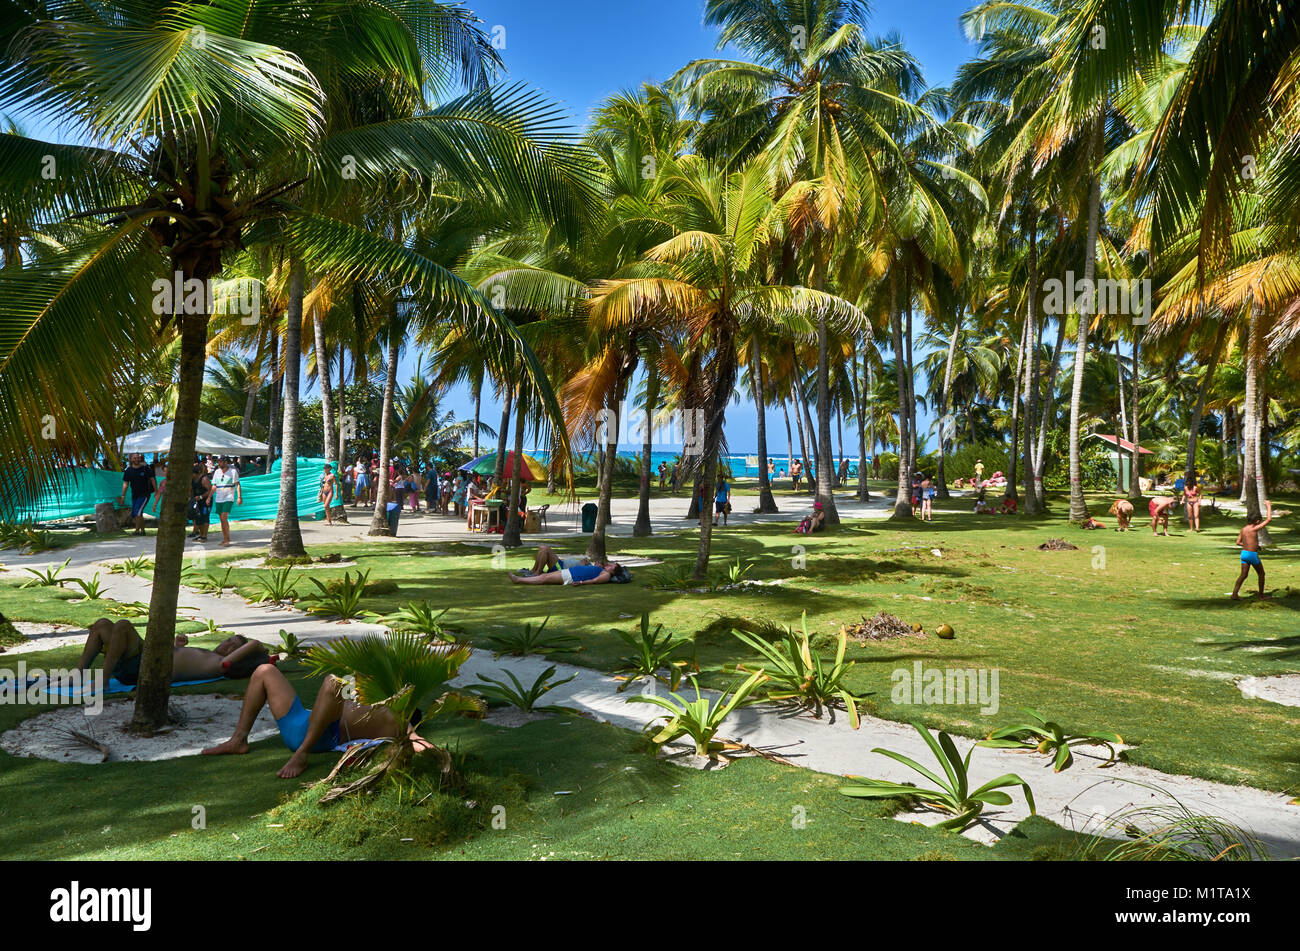 JOHNNY CAY, COLOMBIA - JANUARY 09, 2015: People resting and having a nice time in the island of Johnny Cay. Stock Photo